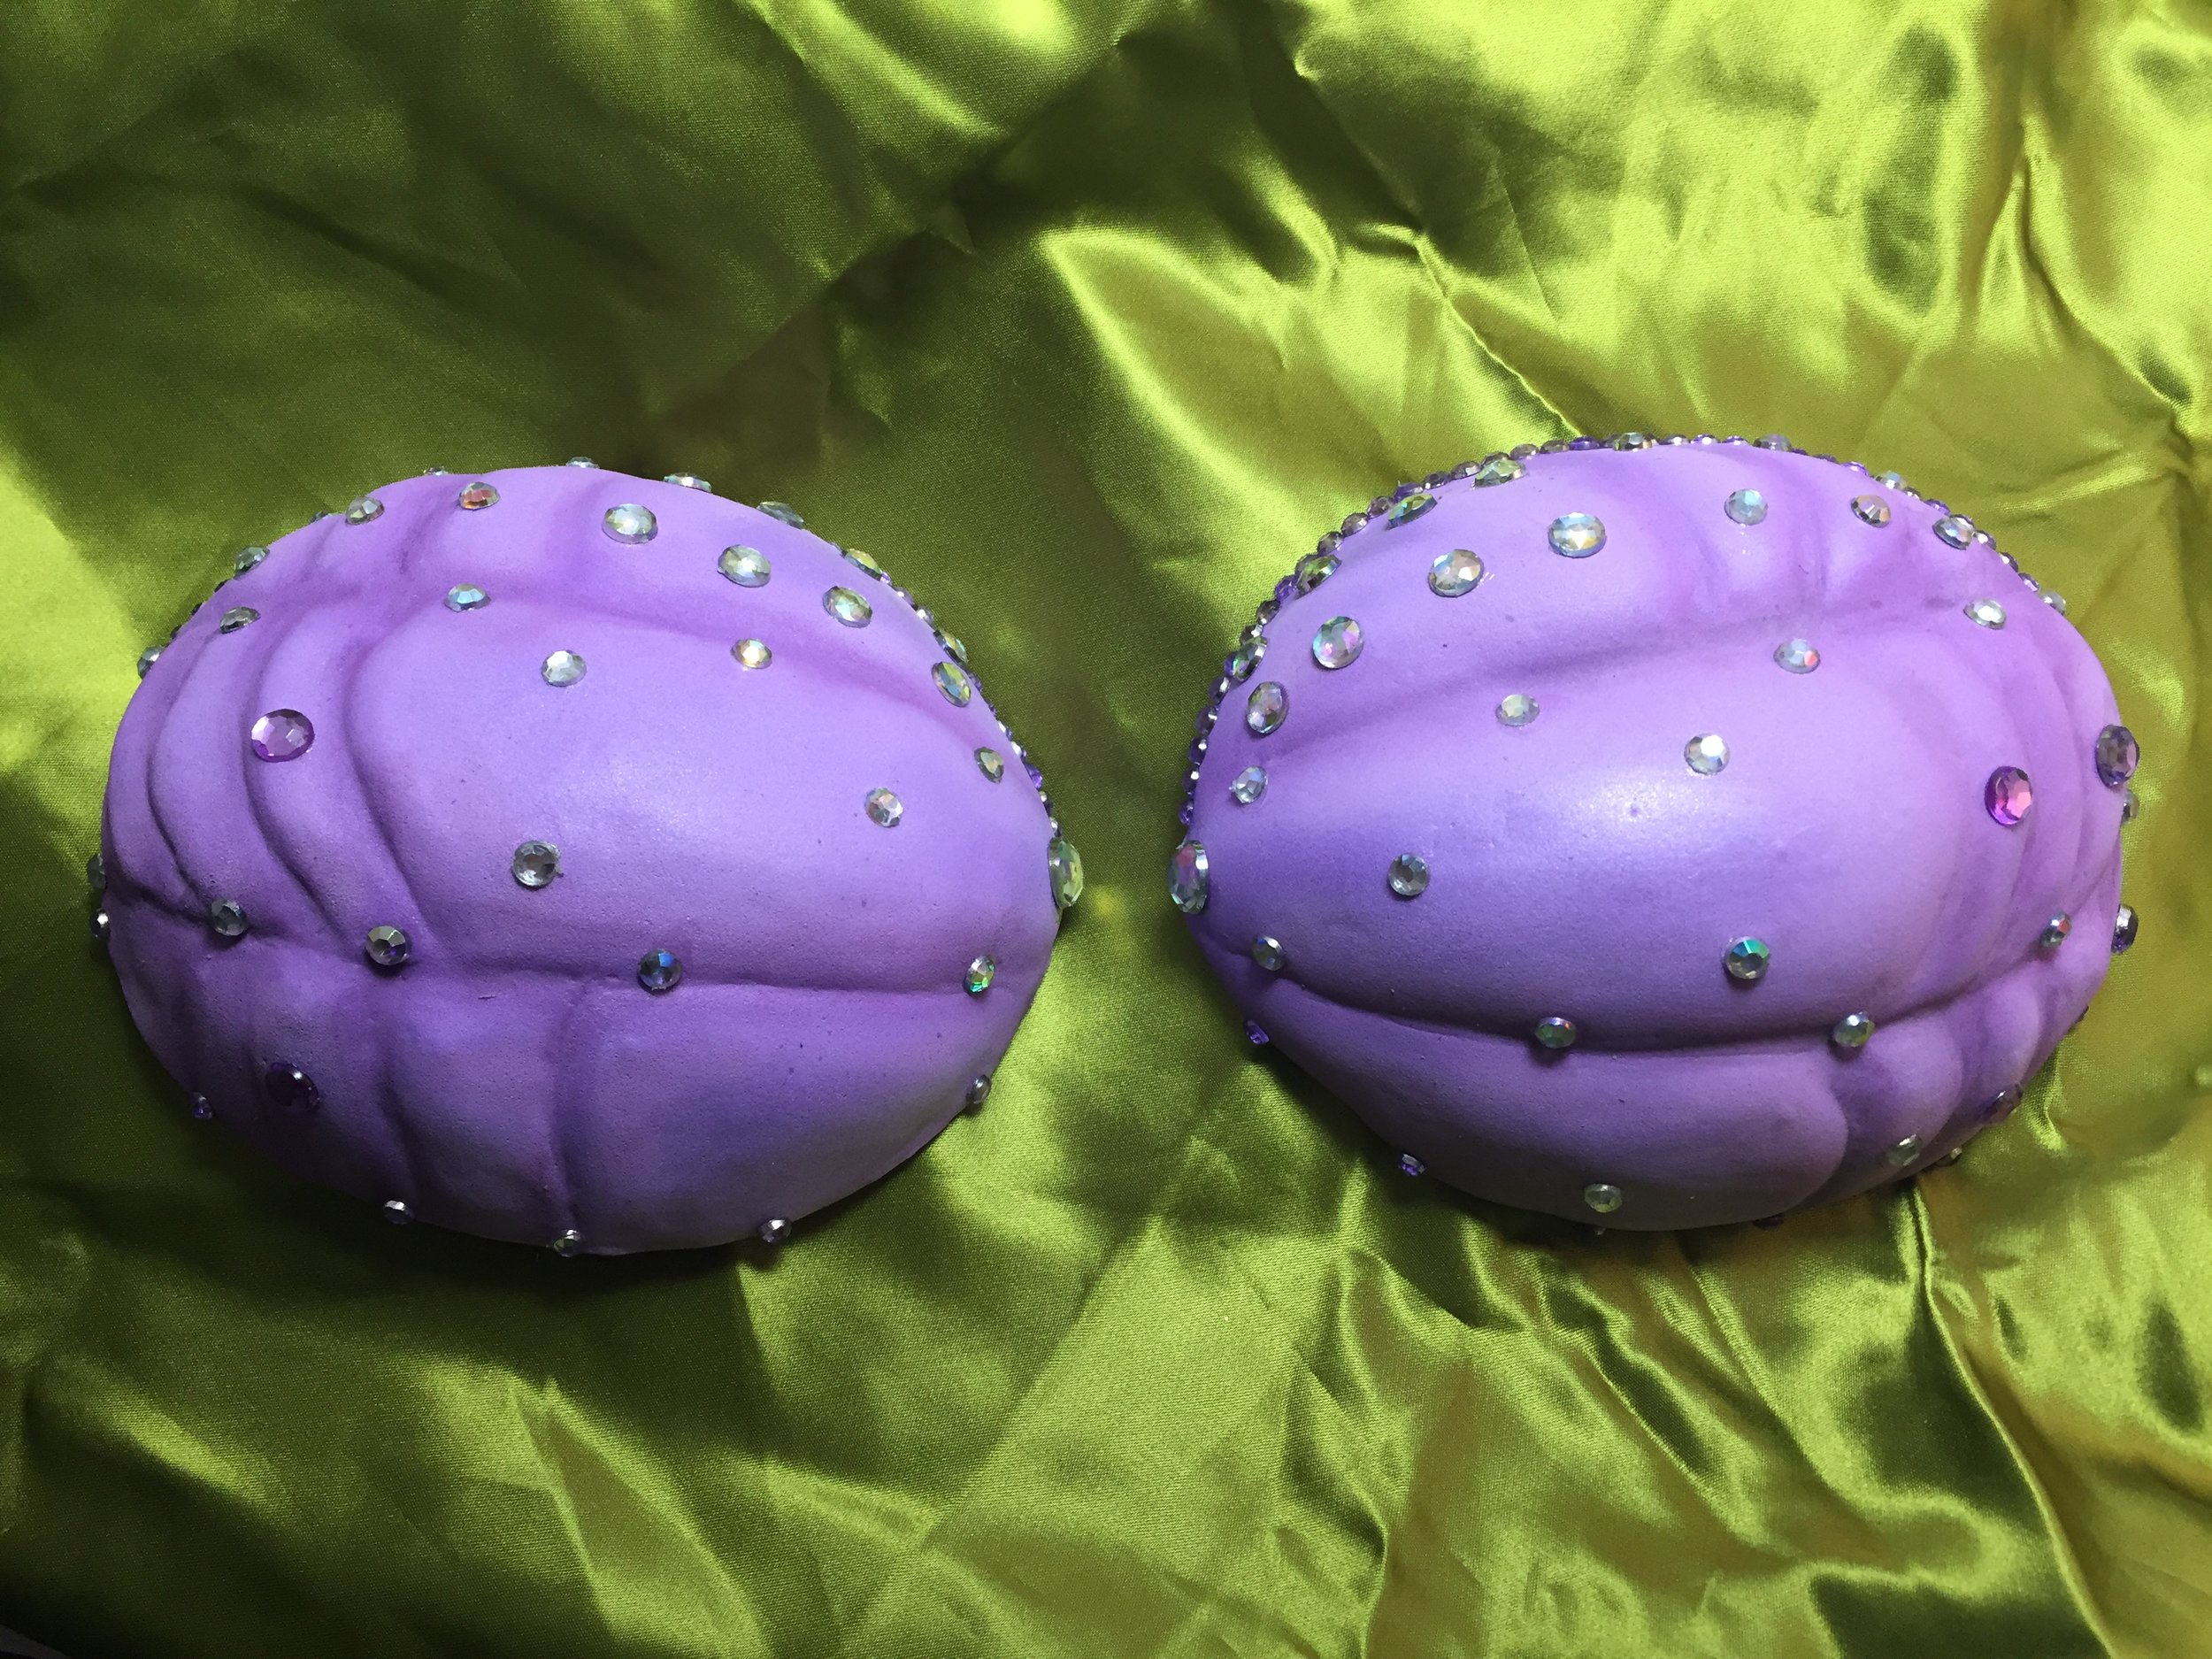 Details on Shells: velcro removable, carved from 5mm foam, airbrush painted, Swarovski crystals.